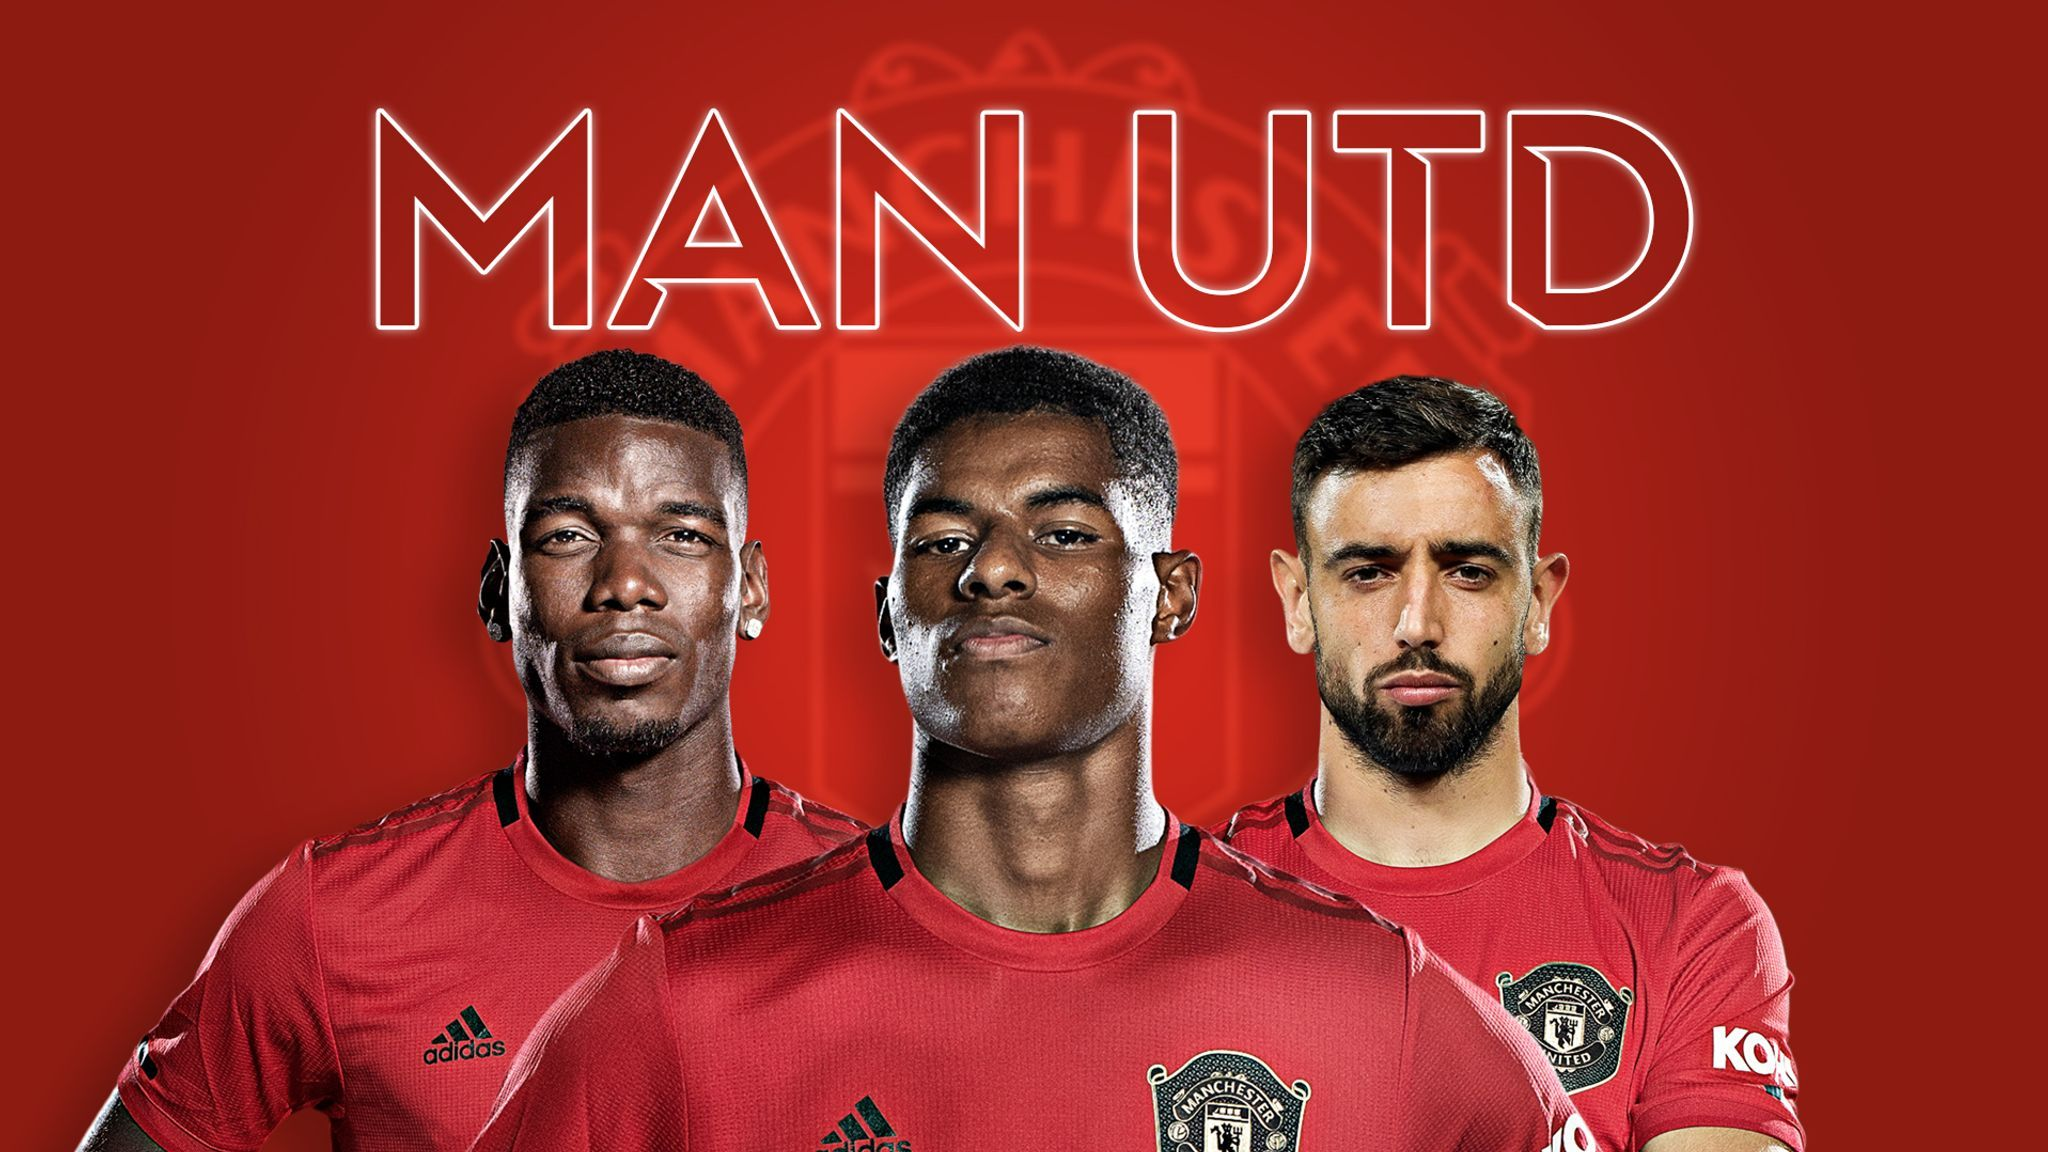 Perfect for your desktop pc, phone, laptop,. Manchester United 2021 Wallpapers Wallpaper Cave